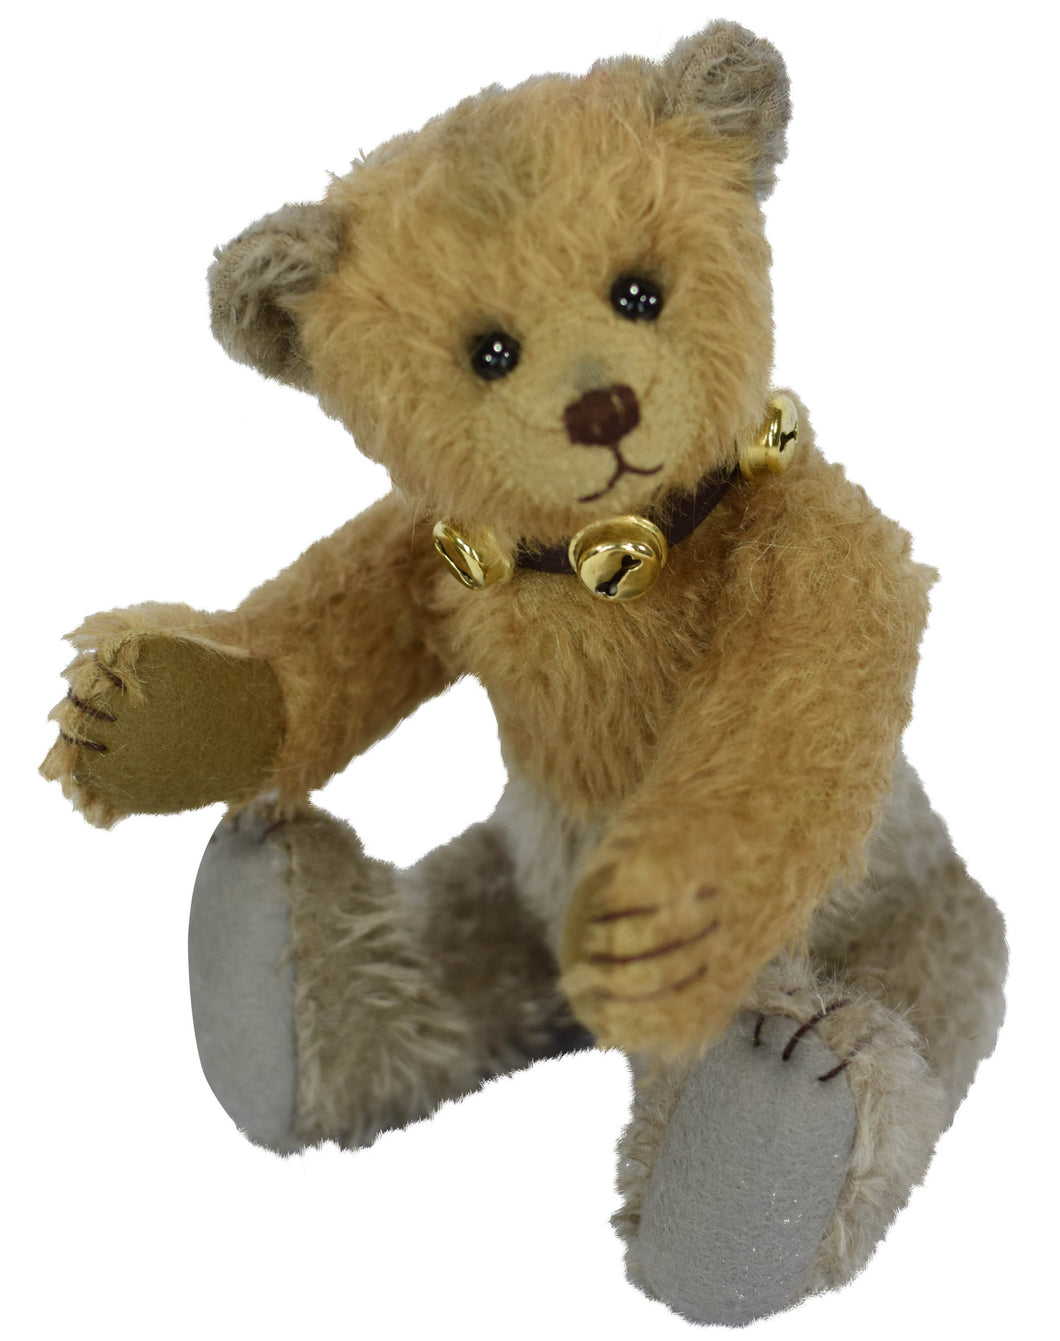 Only One Left! TEDDY MATHIS / CLEMENS MOHAIR ARTIST LIMITED BEAR